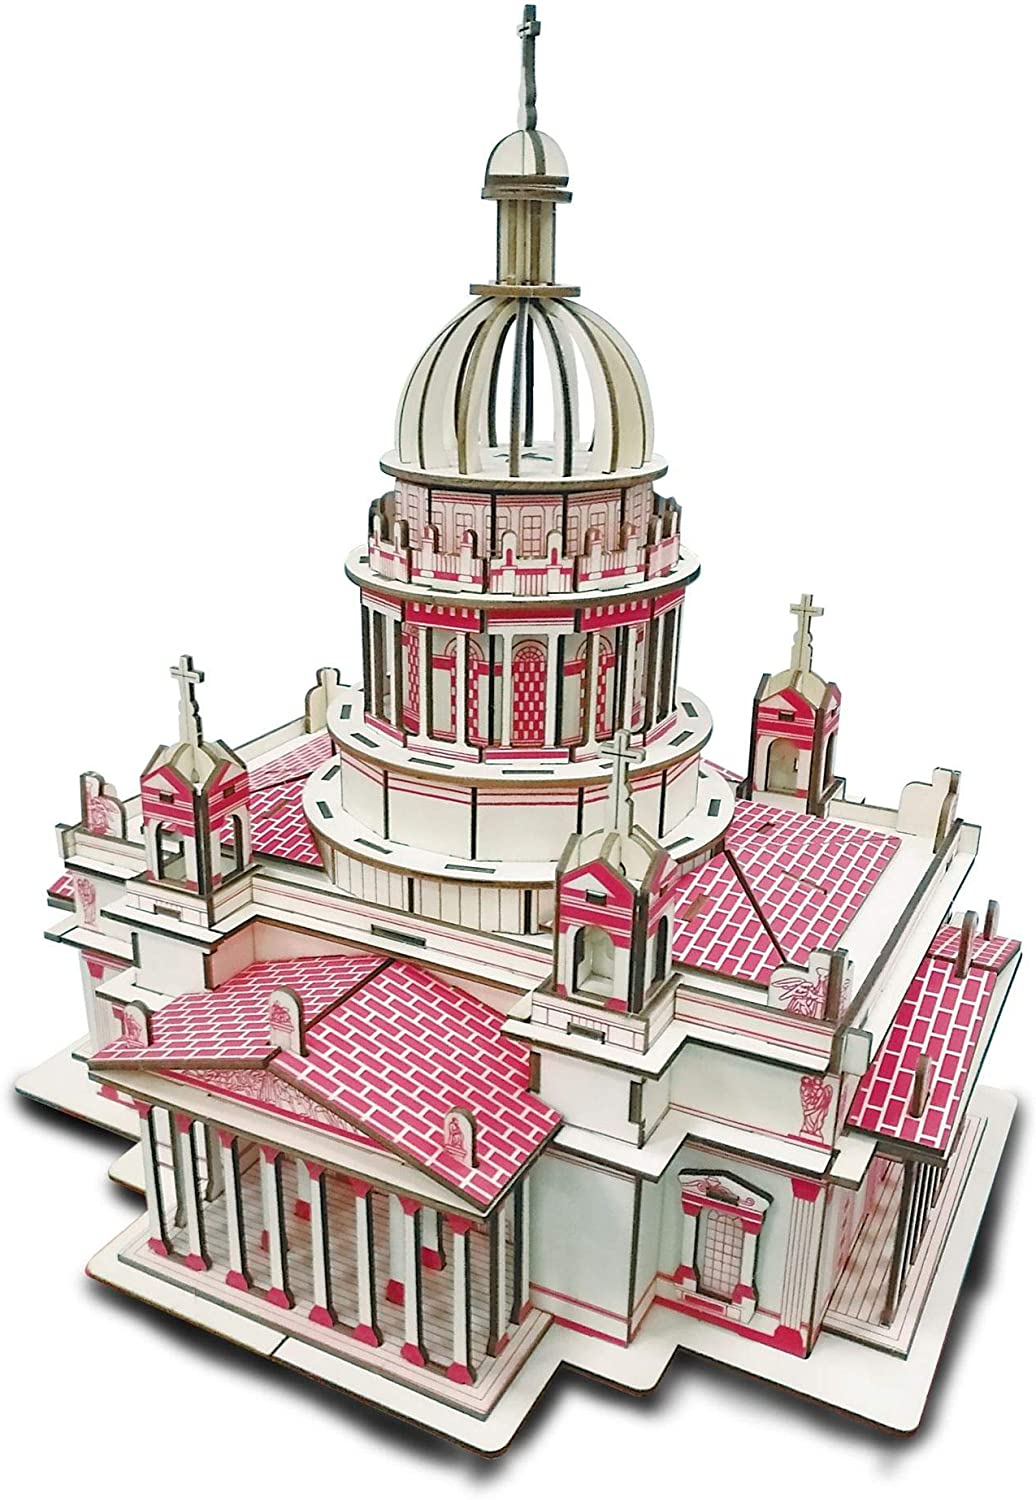 SHPEHP 3D Wooden Puzzle At the price Max 50% OFF of surprise for Kiev Anc Adults-Wooden Cathedral-DIY